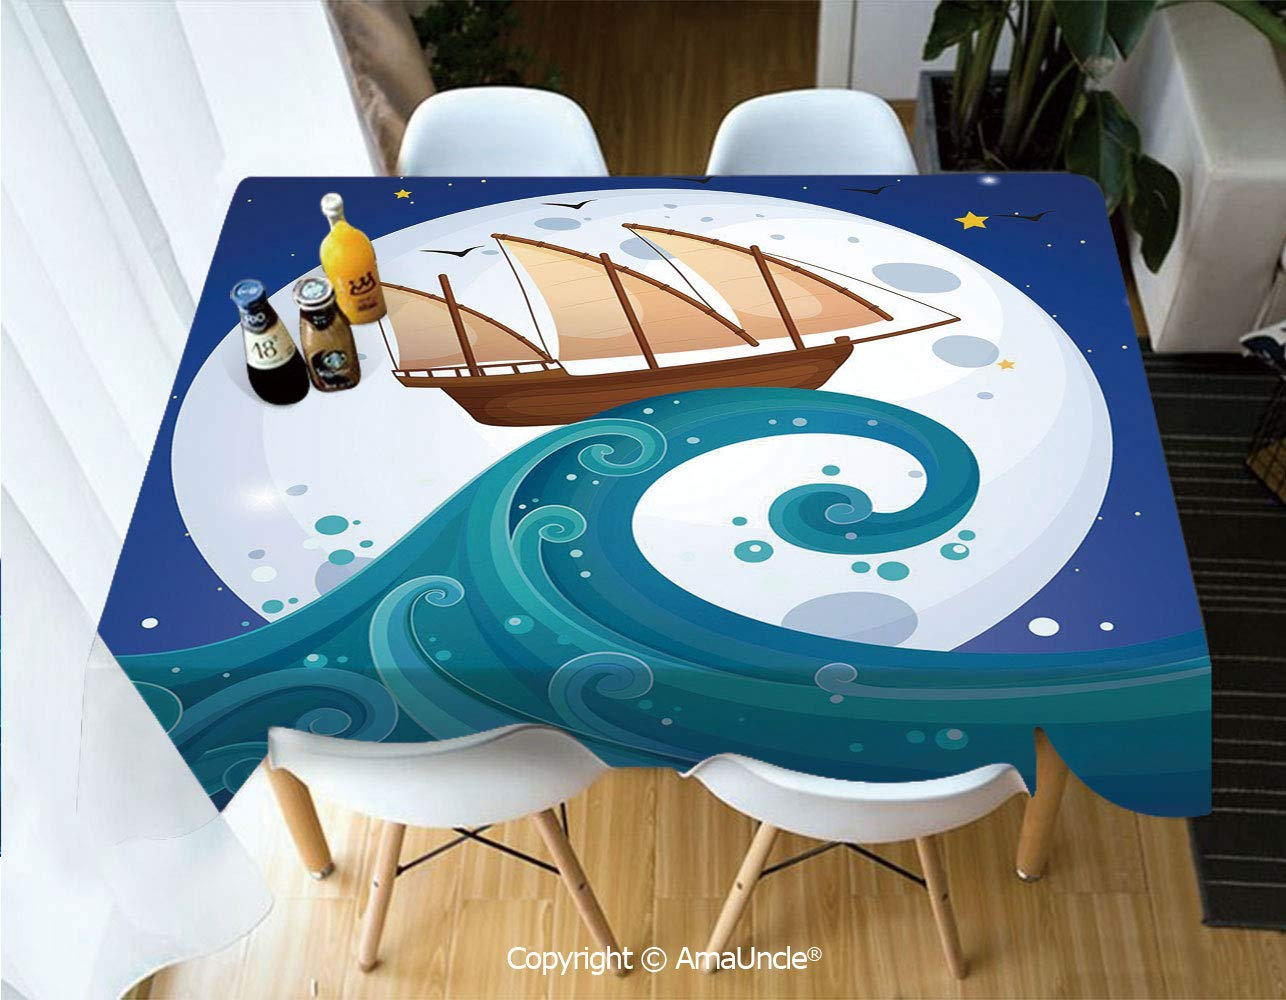 SUPFENG Moon Printed Rectangle Washable Picnic Table Cover Old Ship with Tempest Riding The Waves Full Moon and Stars Marine Cartoon Style Decorative for Dining Room Picnic Party